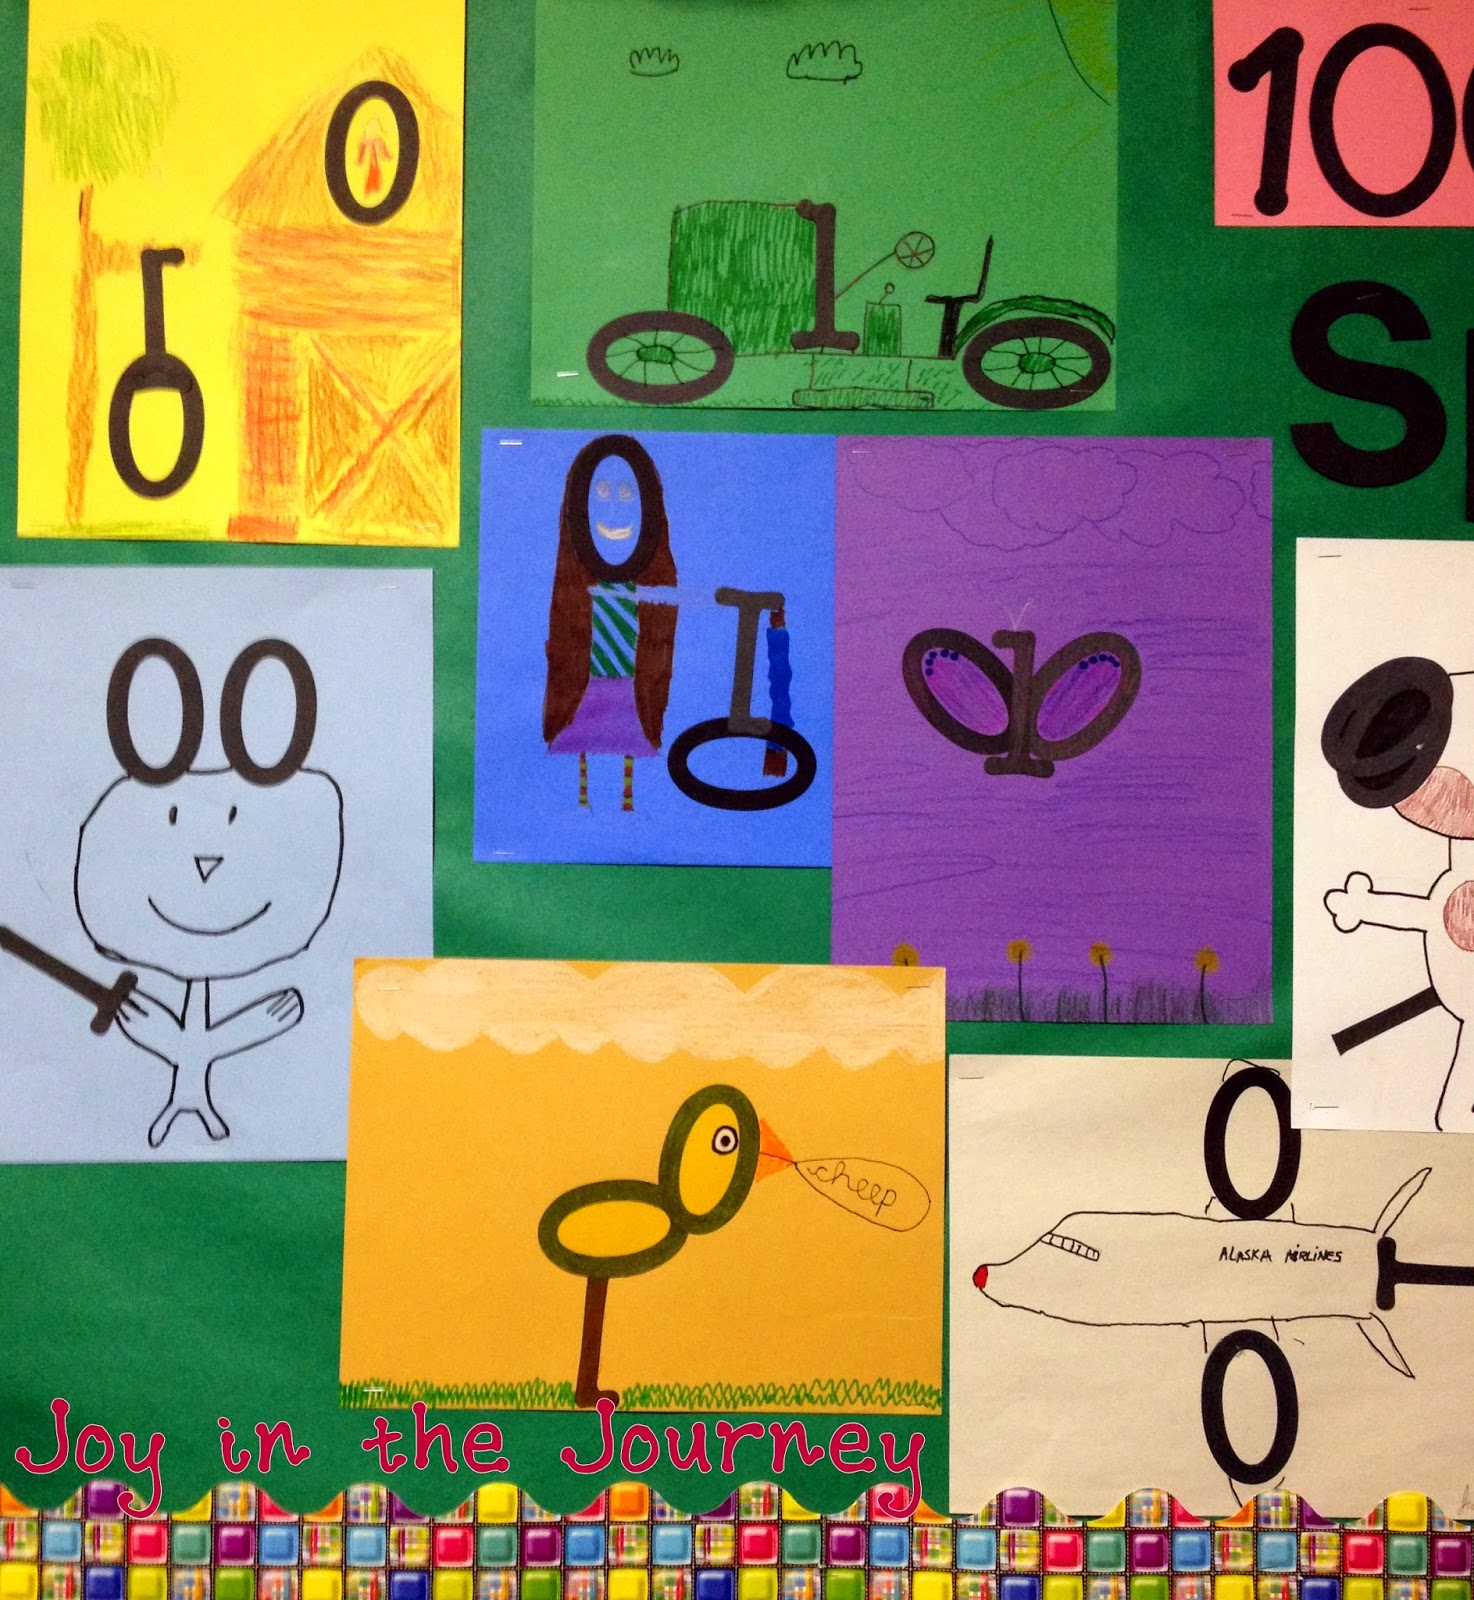 Looking for some fun 100th day of school activities to use in your elementary classroom? Check out this blog post, chocked full of free, fun, and engaging  ideas to help you celebrate the 100th day of school. Blog post by Jessica Lawler @ Joy in the Journey